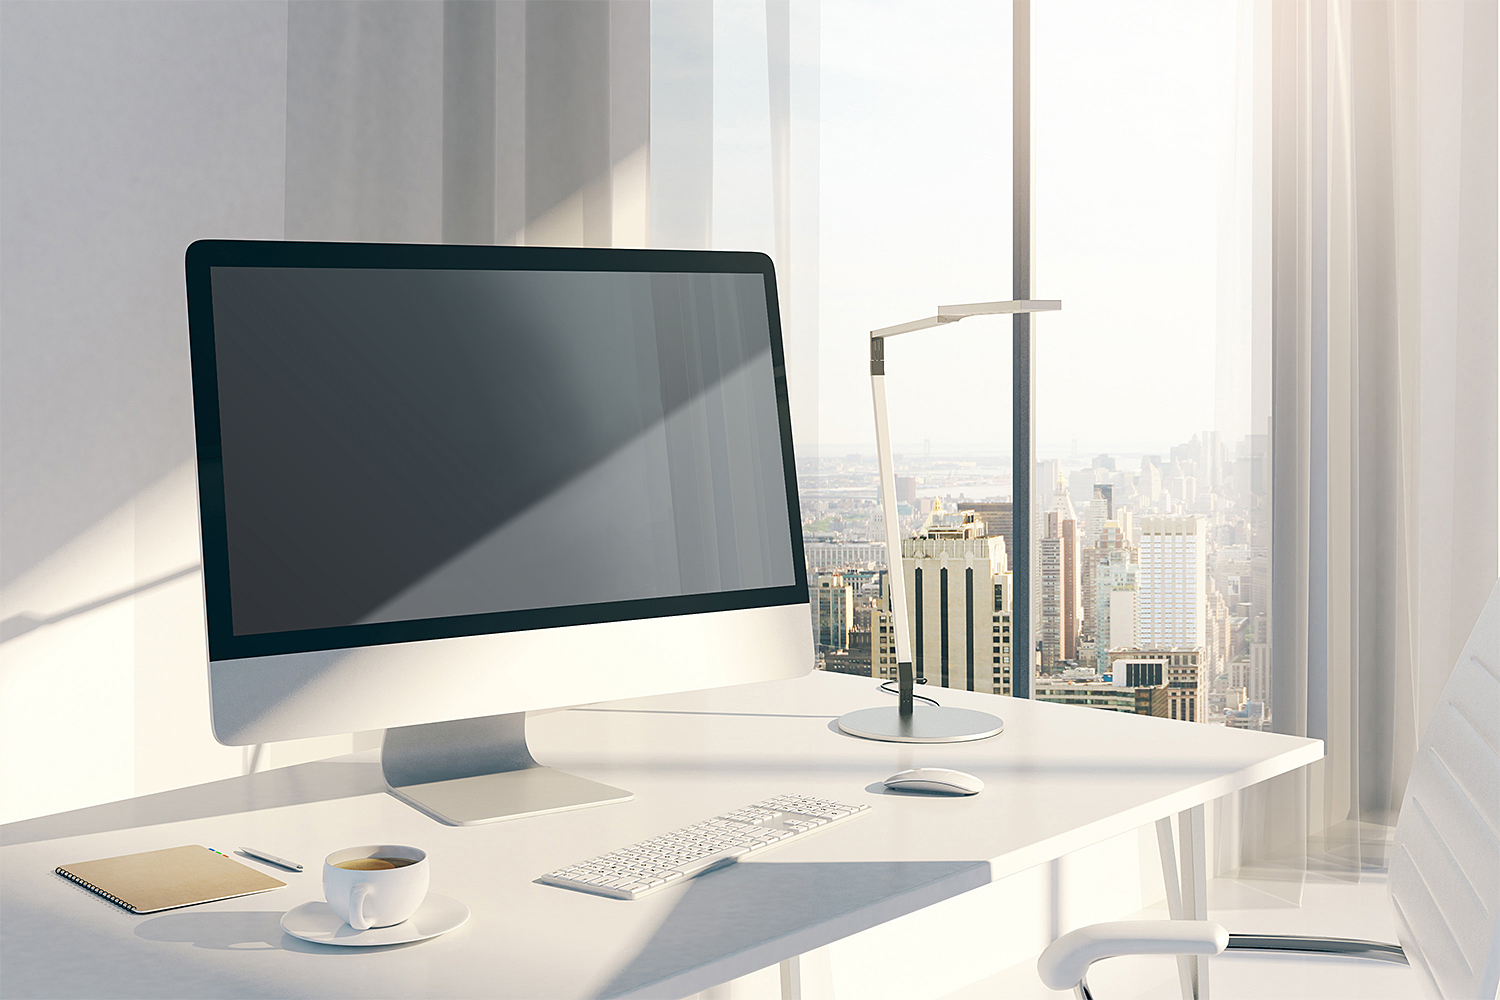 Desktop iMac Screen Mockup Free